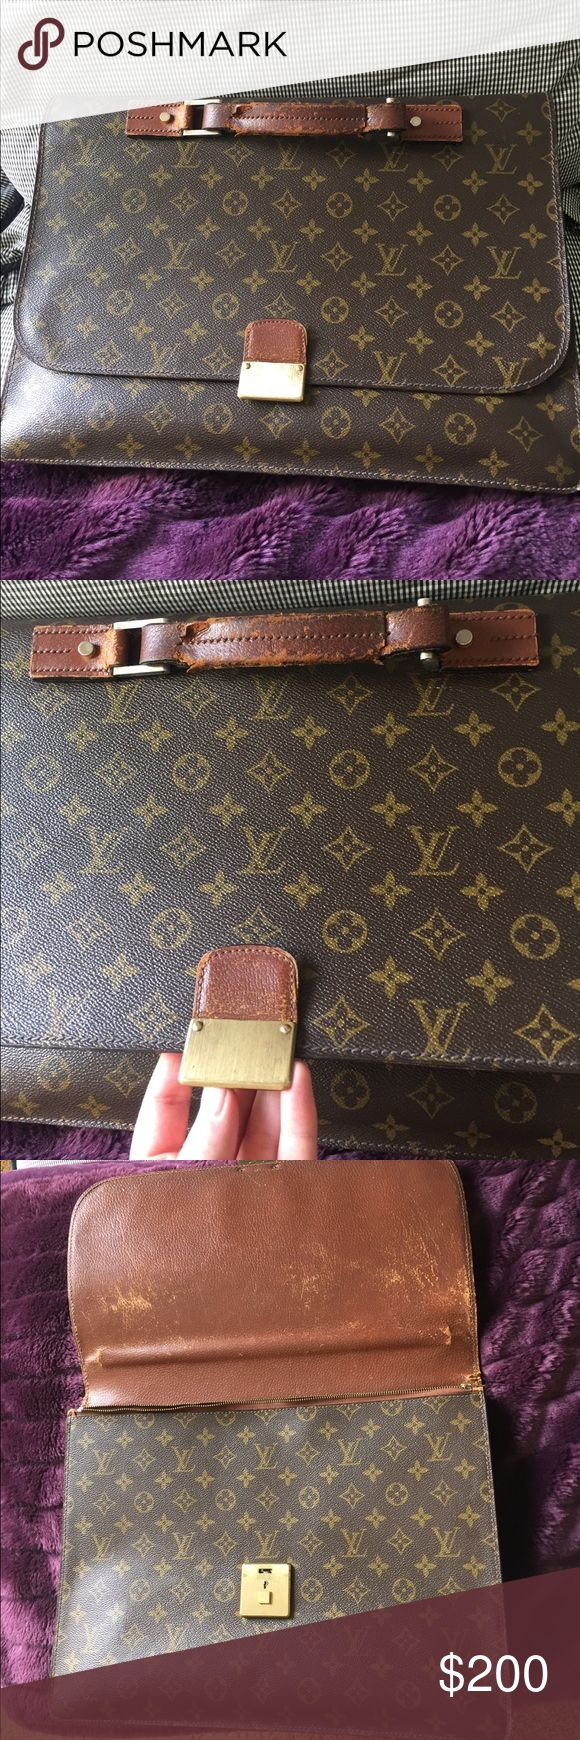 Louis Vuitton briefcase monogram Super vintage and old, and very used condition. Bought it from a consignment shop in dc for $500 five years ago. Will fit a 13 inch laptop easily or folders and notebooks. Zipper says Alpine on it. When I asked someone that worked at the LV store if it was authentic they said it's either extremely old or a really good fake Louis Vuitton Bags Laptop Bags